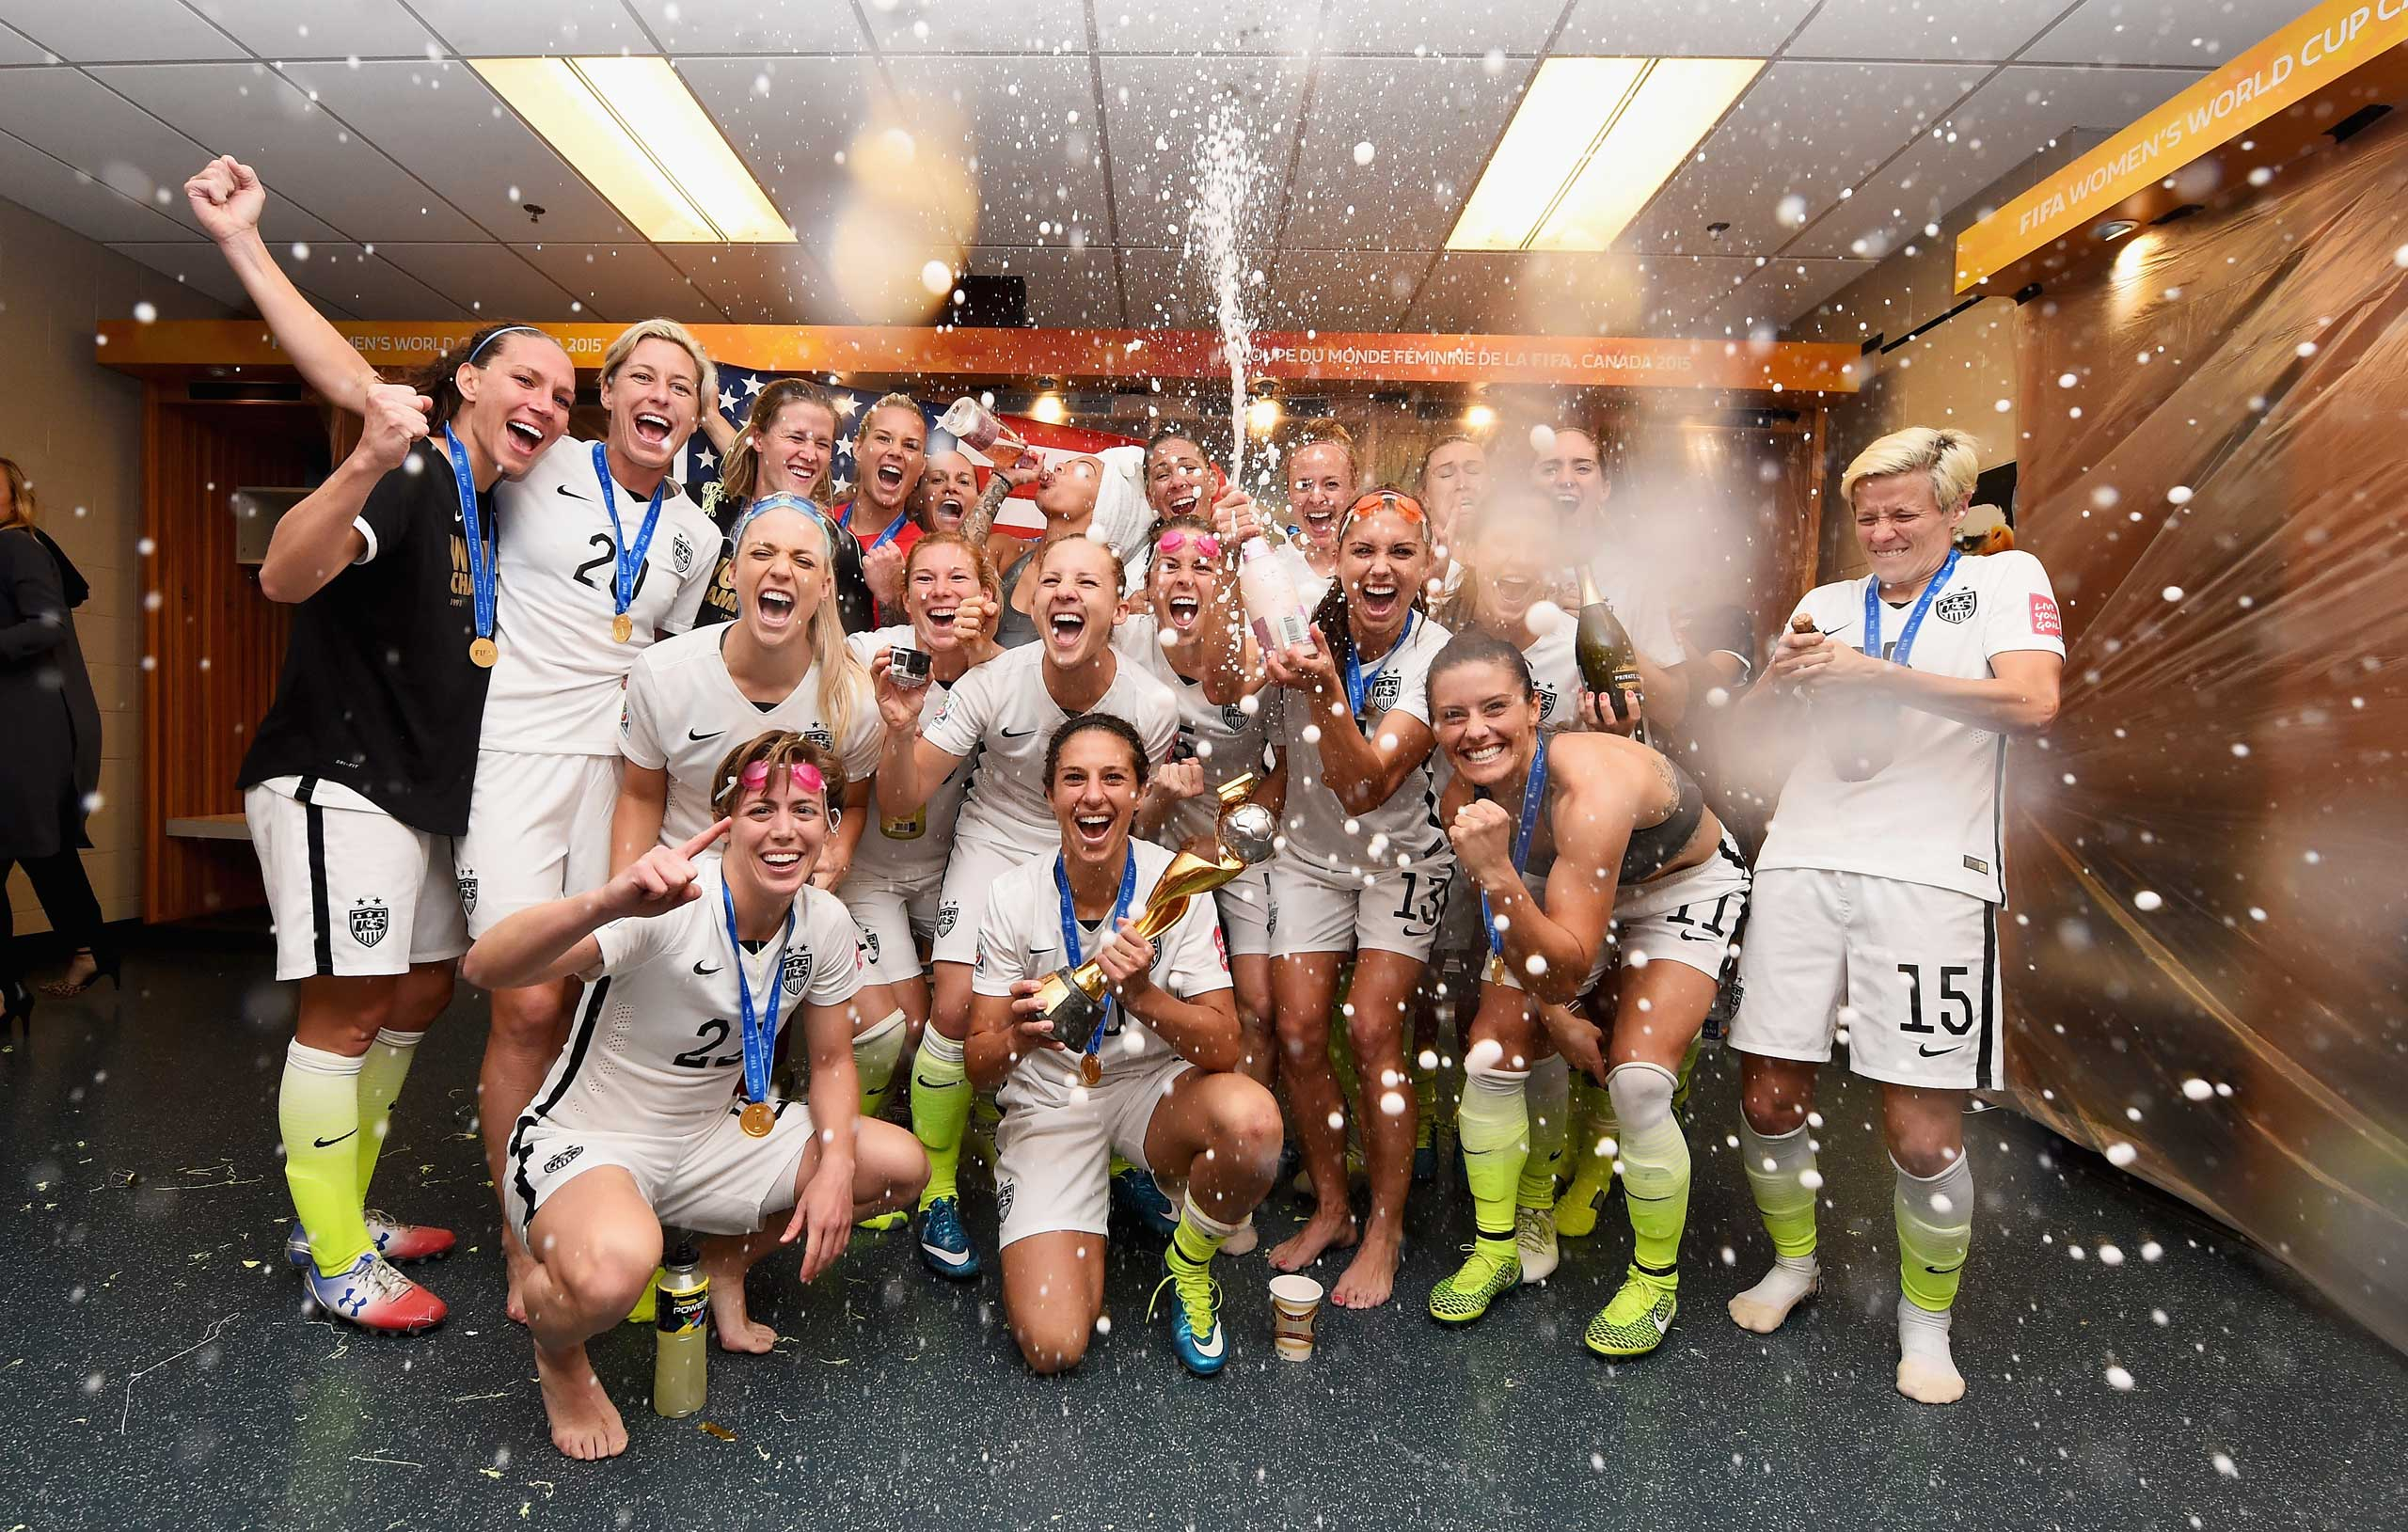 Carli Lloyd of USA celebrates with the trophy and her team mates in the locker room after winning the FIFA Women's World Cup 2015 Final between USA and Japan at BC Place Stadium on July 5, 2015 in Vancouver, Canada.